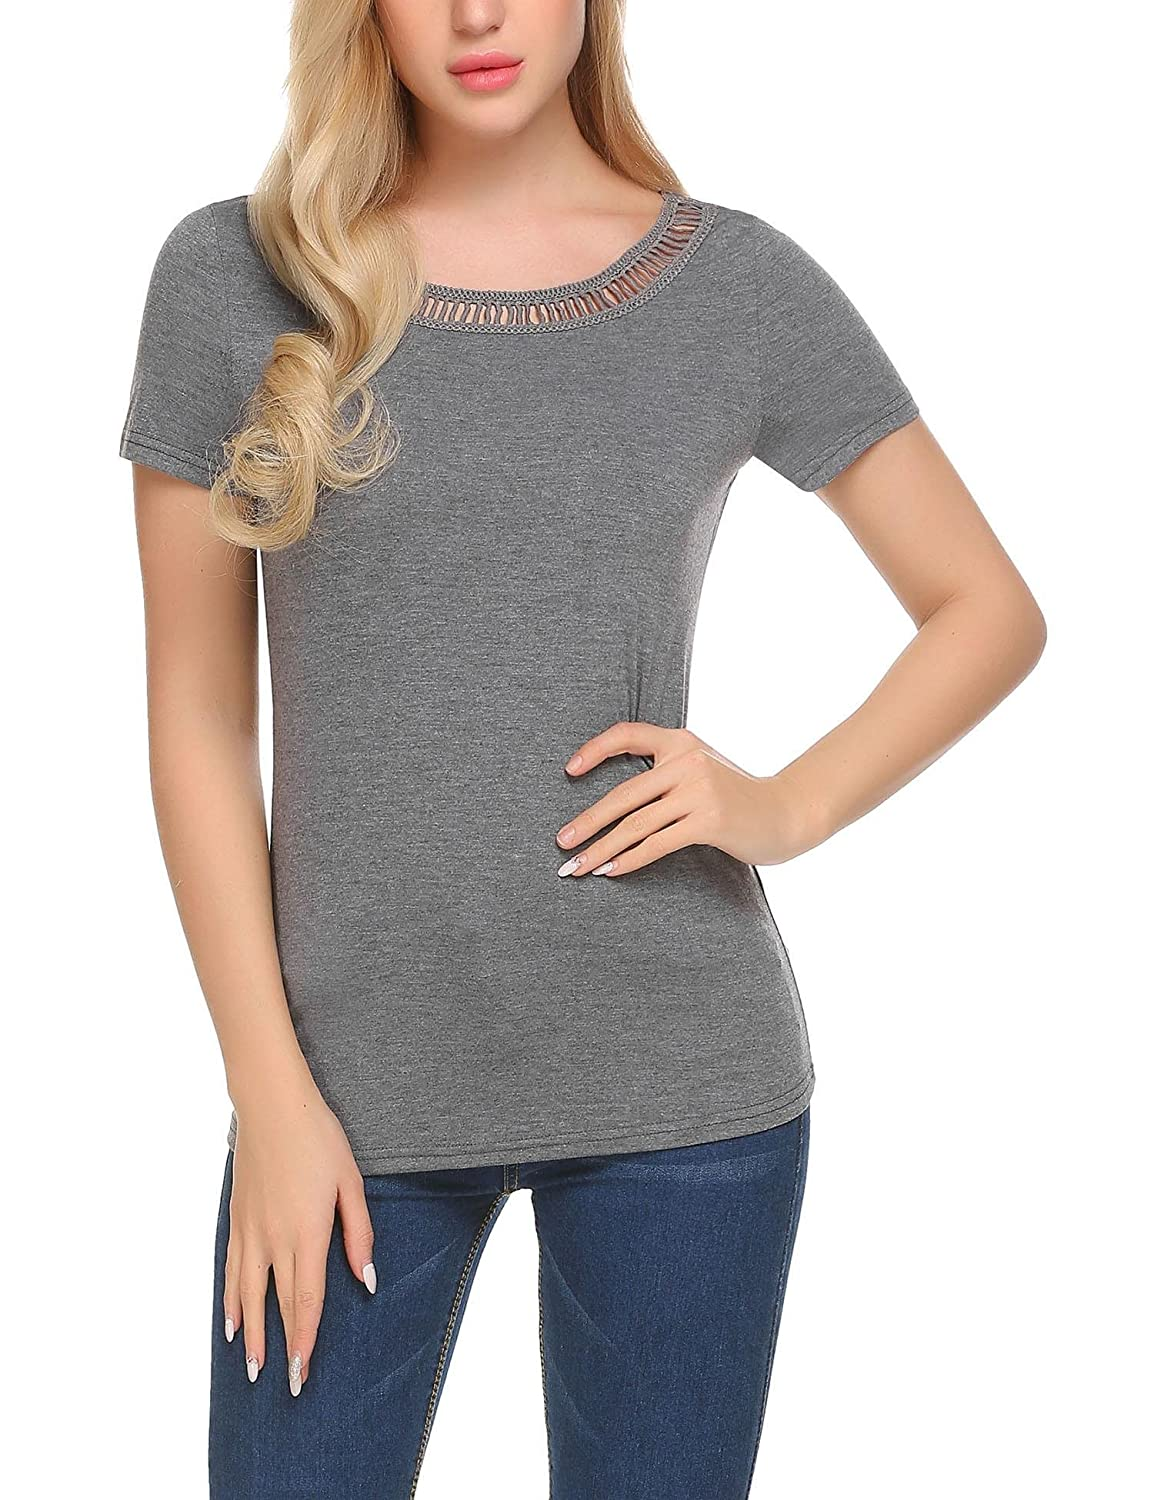 1b5a6f7b0d04 Yayado Women Casual Crew Neck Cut Out Tops Solid Short Sleeve Shirts Blouse  at Amazon Women's Clothing store: